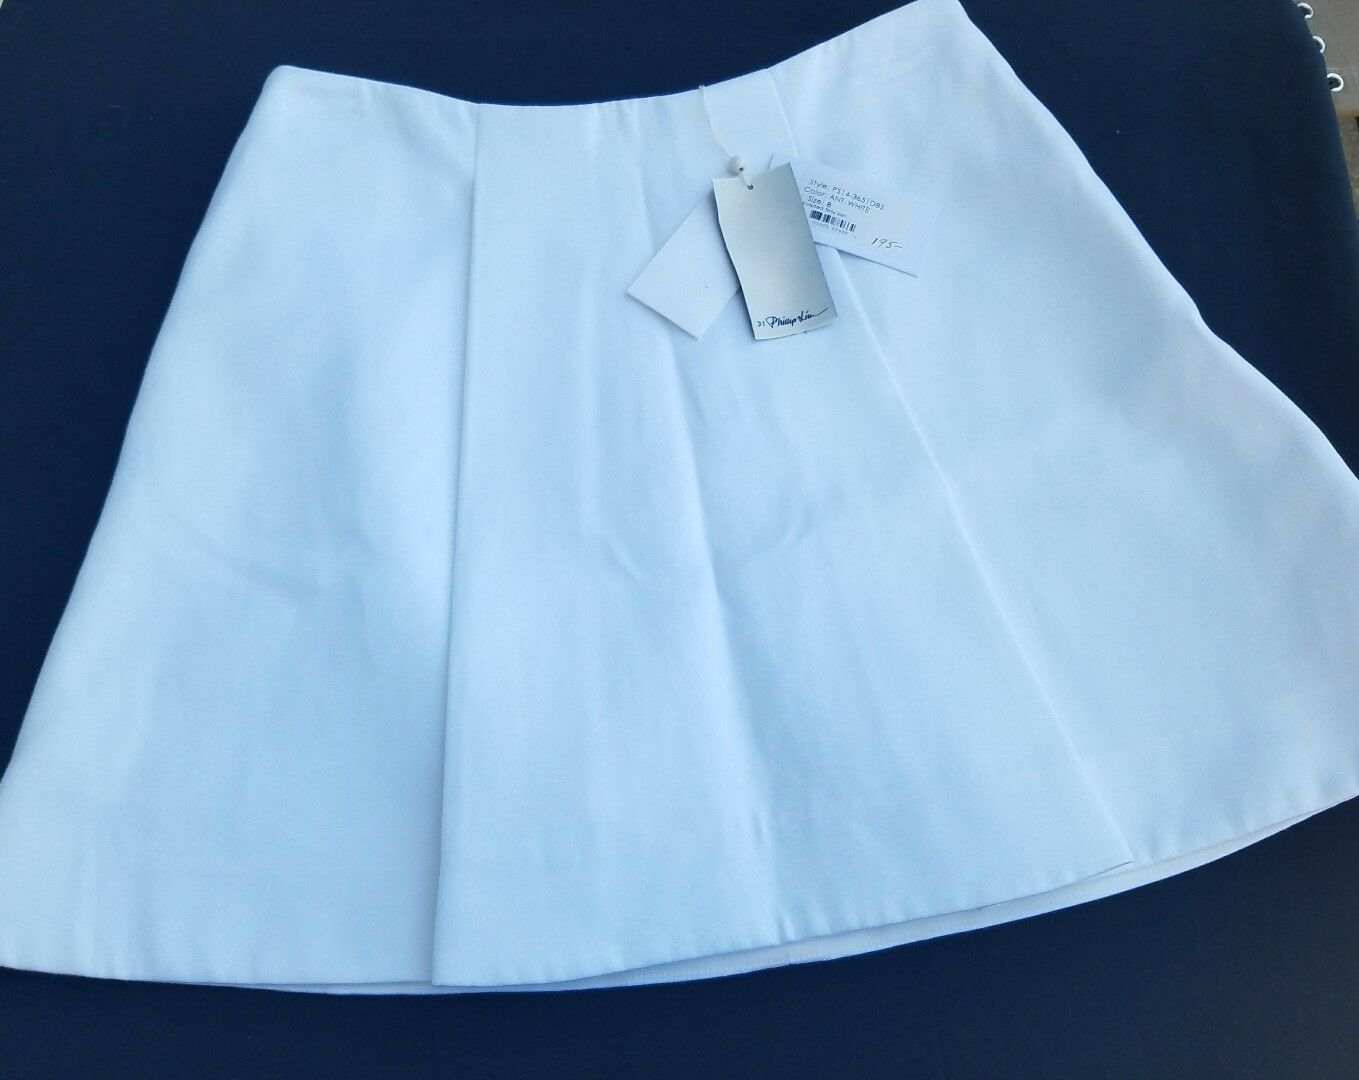 NWT 3.1 Phillip Lim - Pleated cotton mini skirt - Off-white SZ 6  Free Shipping